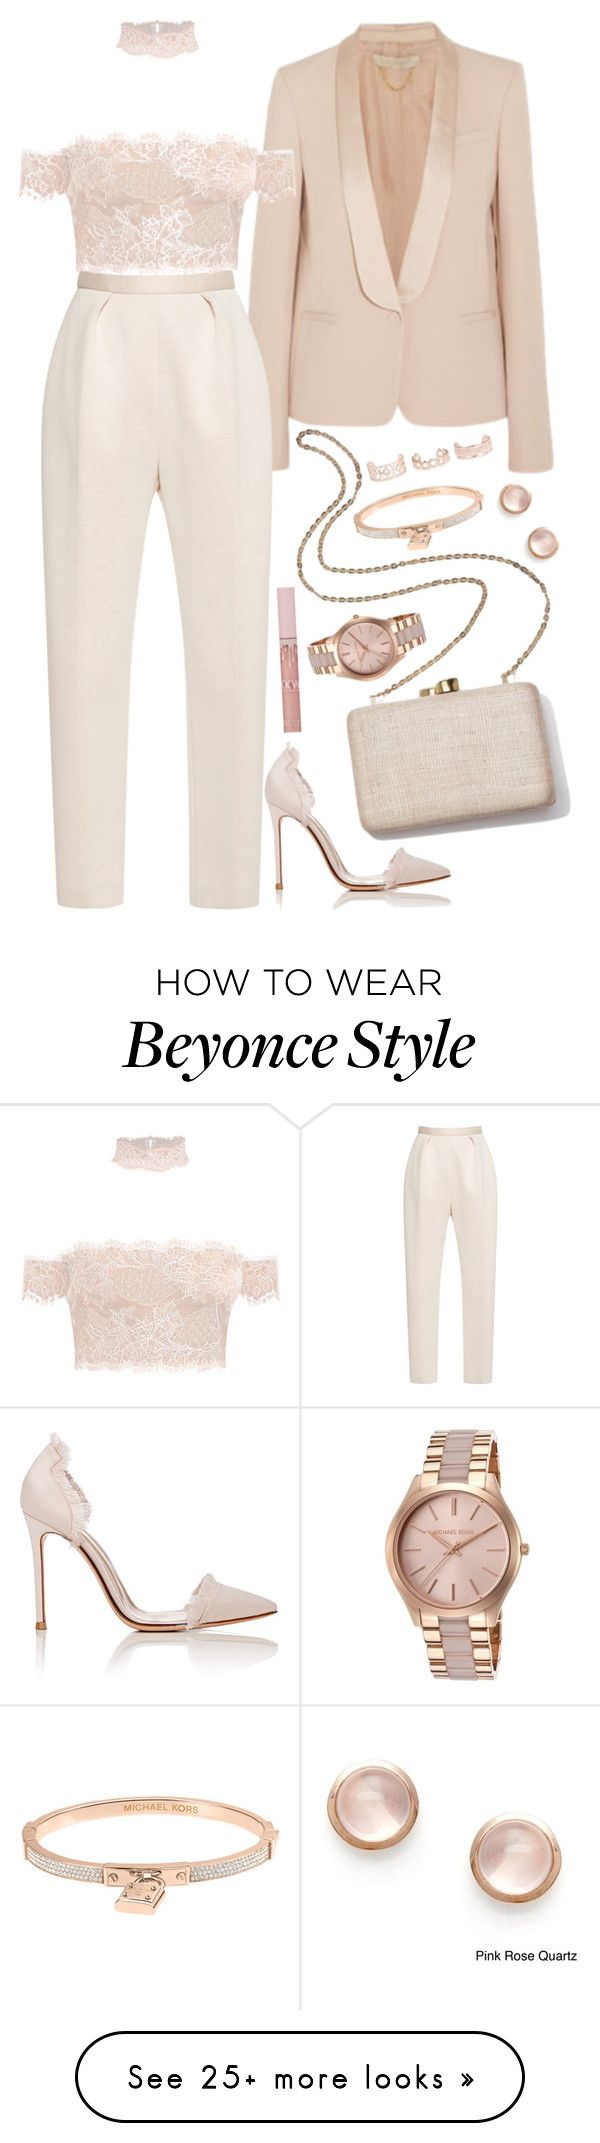 """"""". . ."""" by valeria-angel on Polyvore featuring DKNY, Delpozo, Gianvito Rossi, Kayu, Michael Kors, New Look and Kabella Jewelry"""